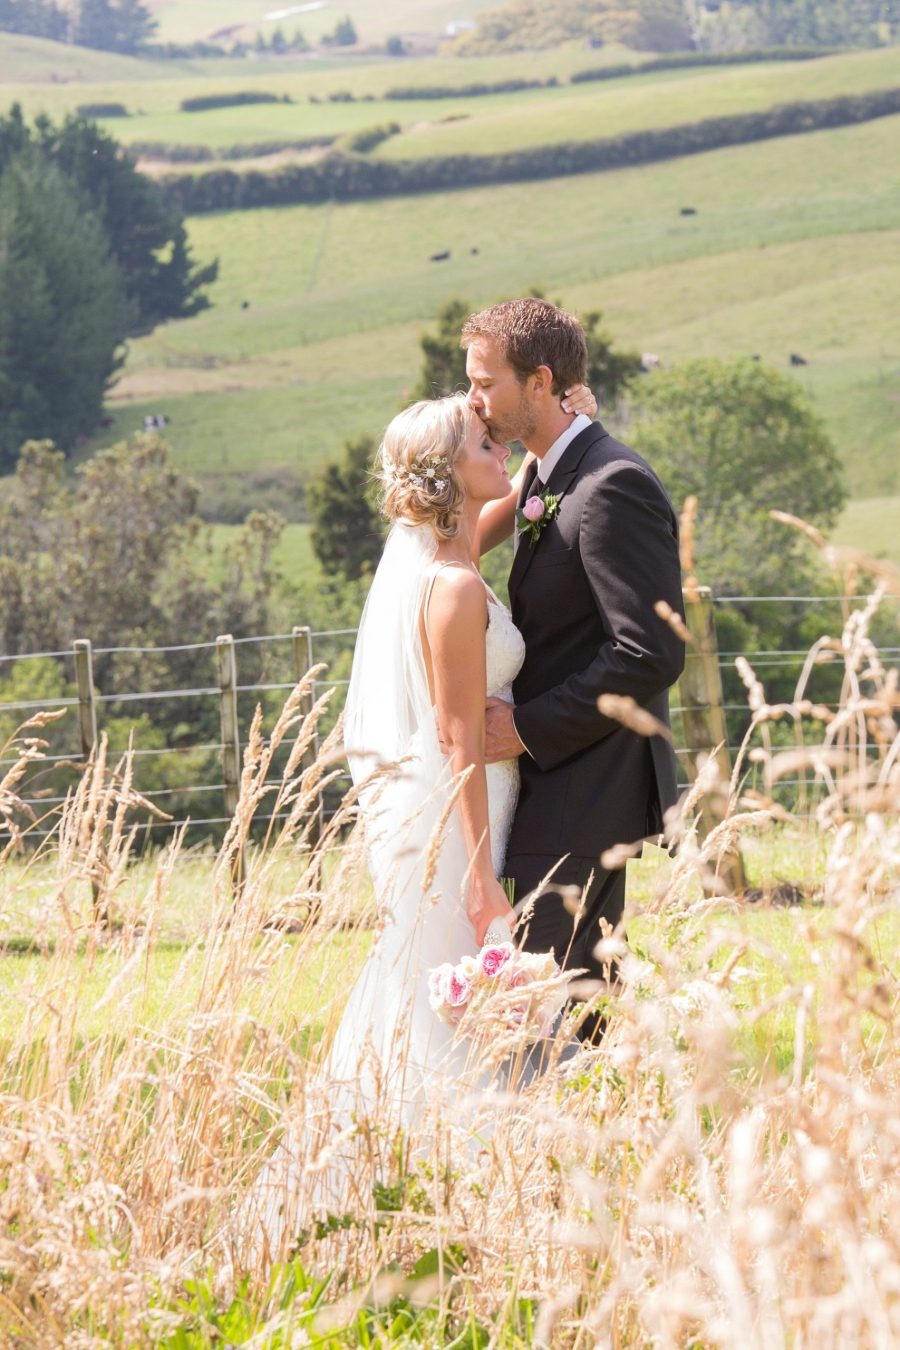 Natural country wedding photo in Summer